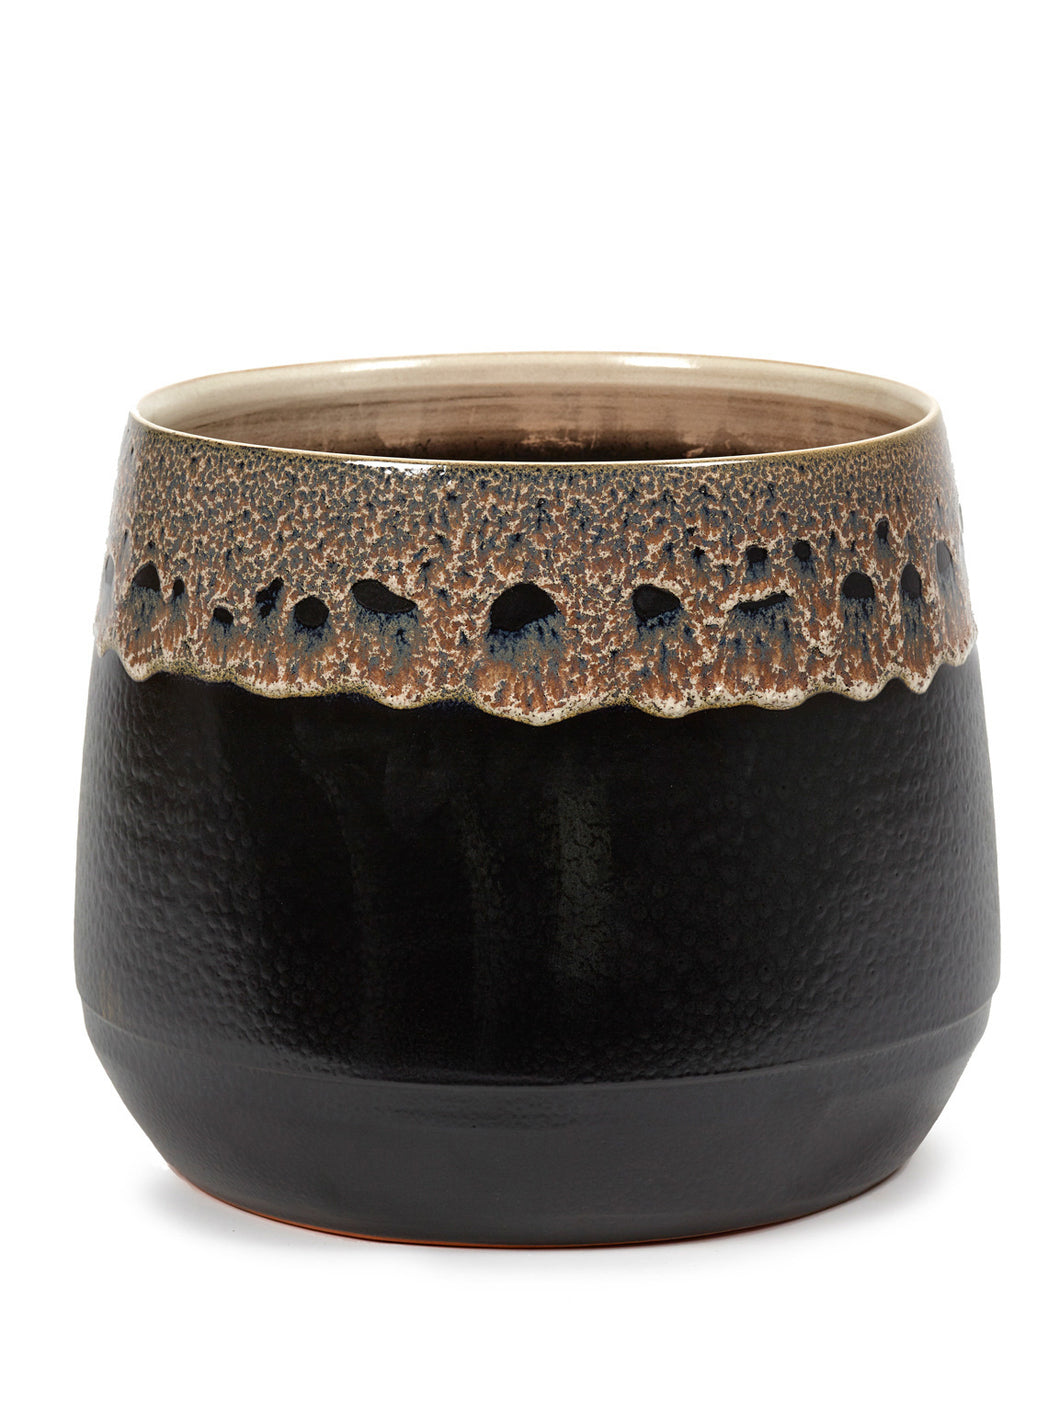 Black Glazed Plant Pot - *Local Pick Up Only*